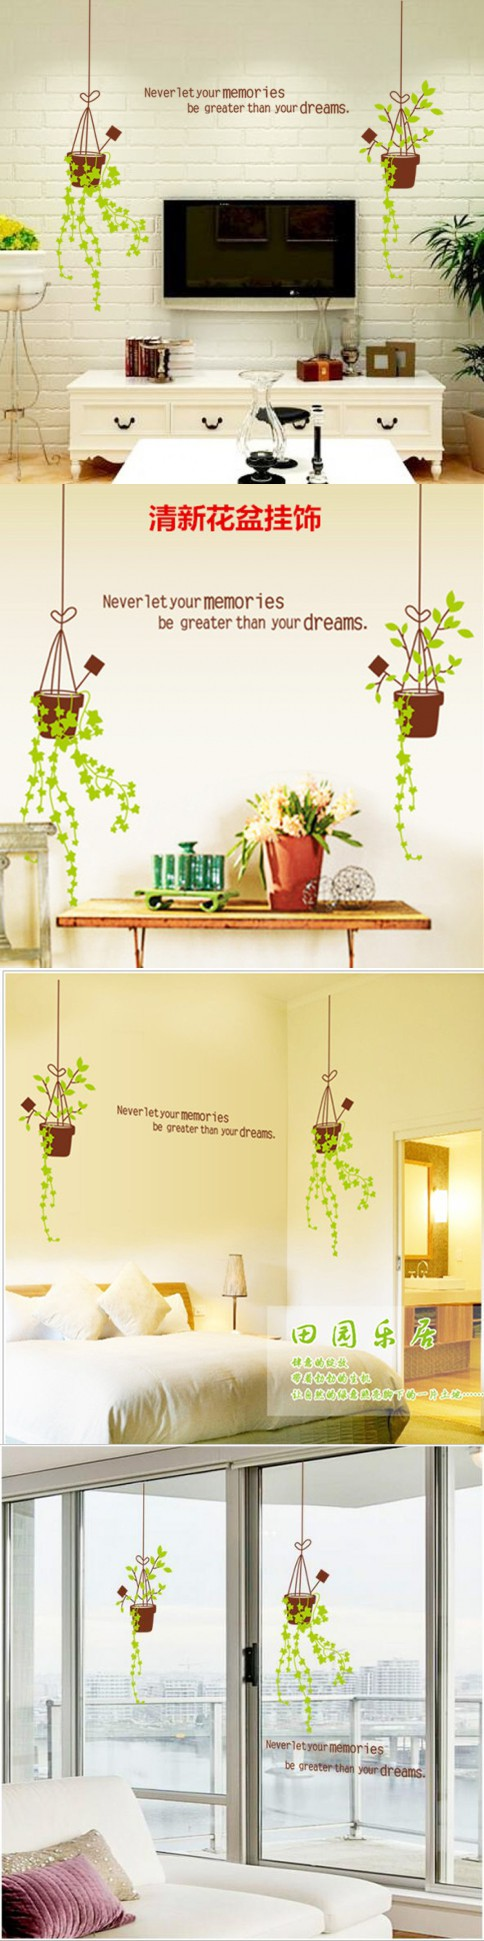 Beautiful Memories Wall Decor Composition - Wall Painting Ideas ...